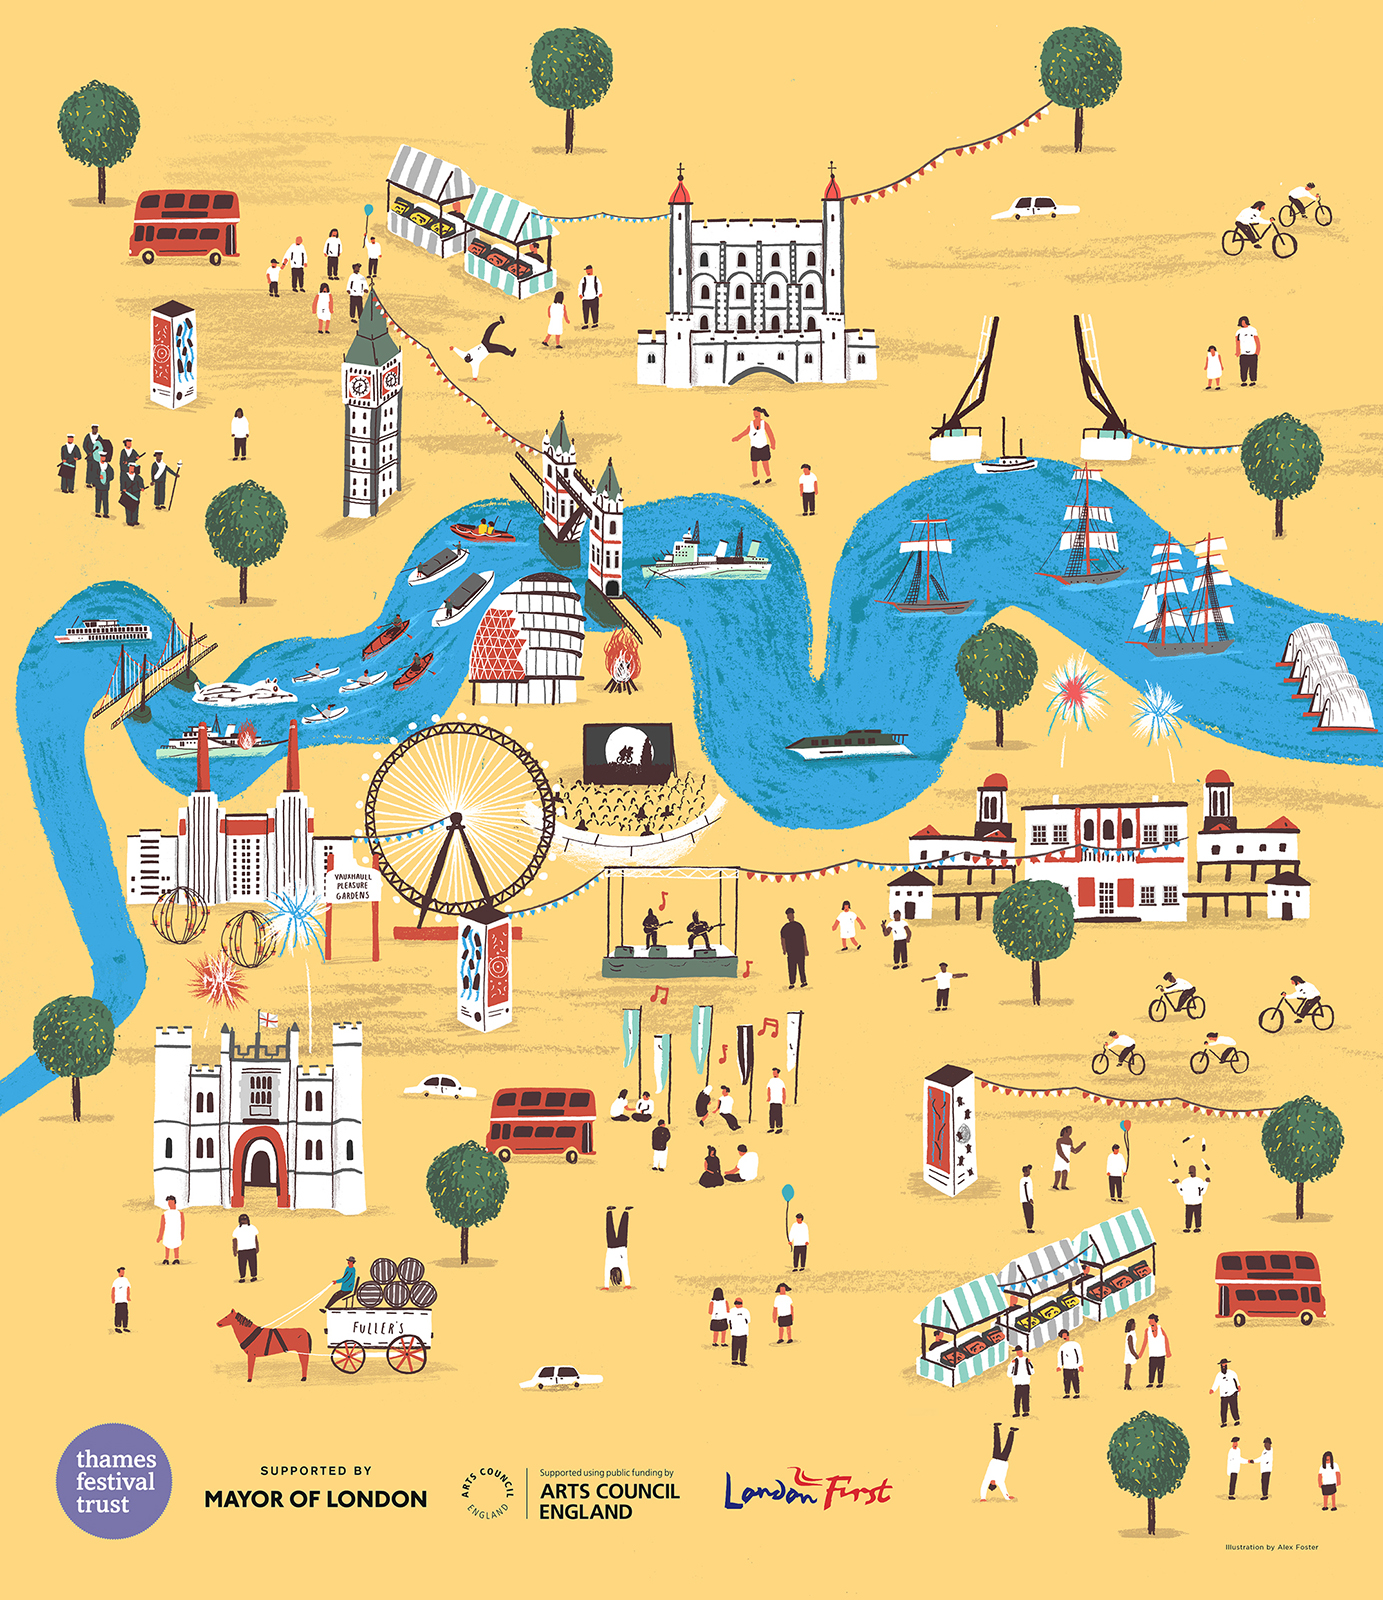 The winning poster for Totally Thames